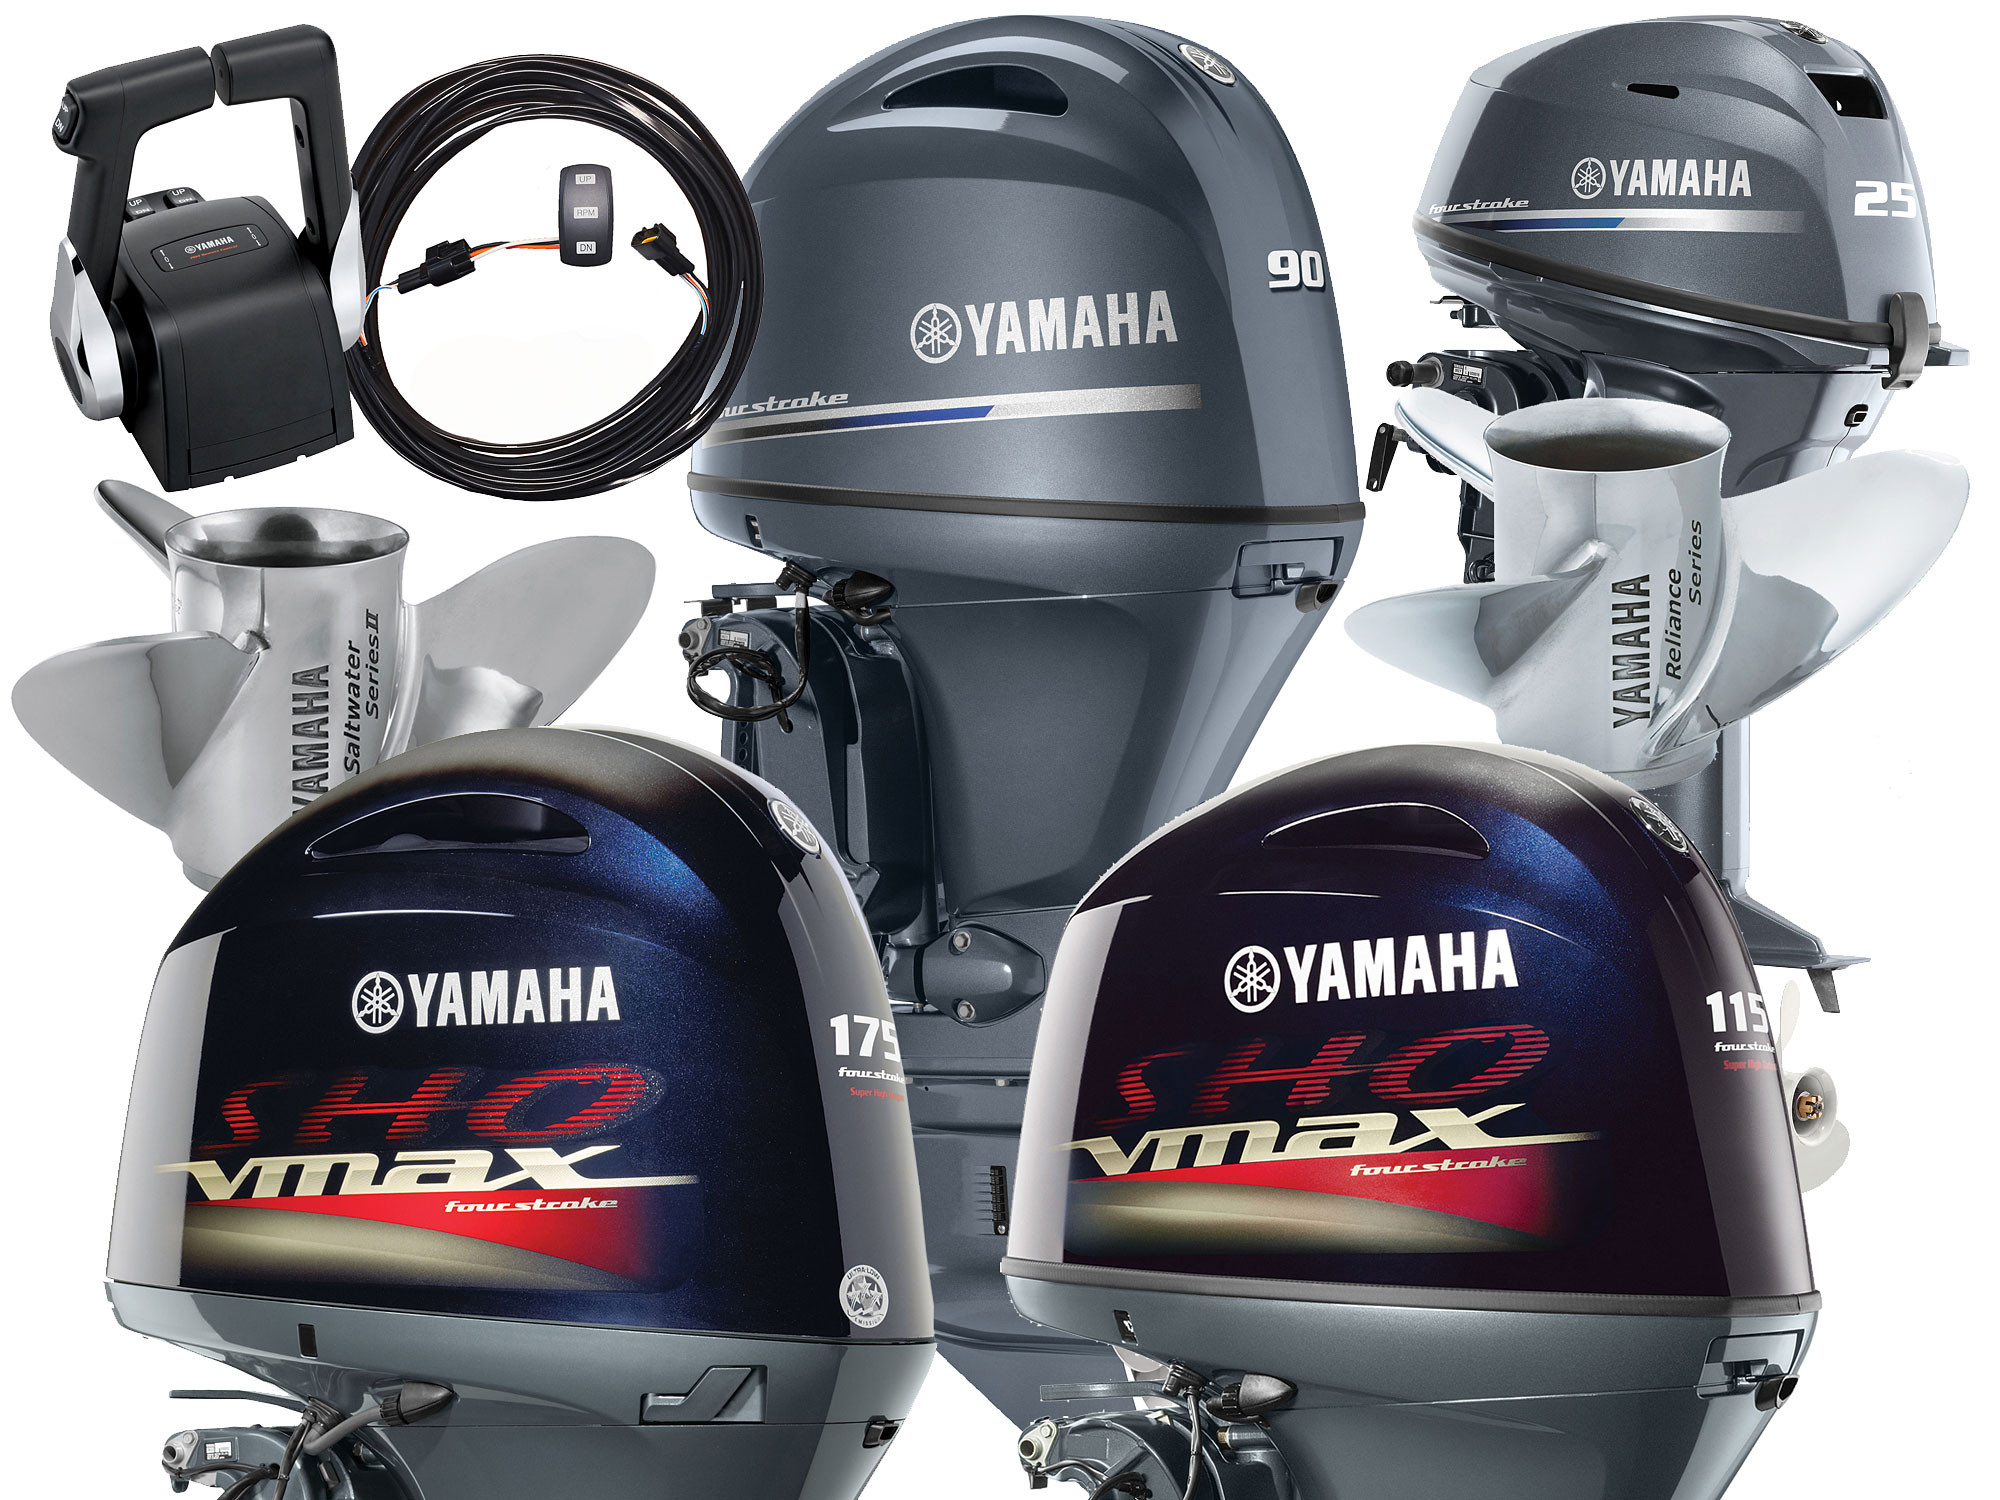 Yamaha Marine Introduces New Outboards, Props and Controls | Sport